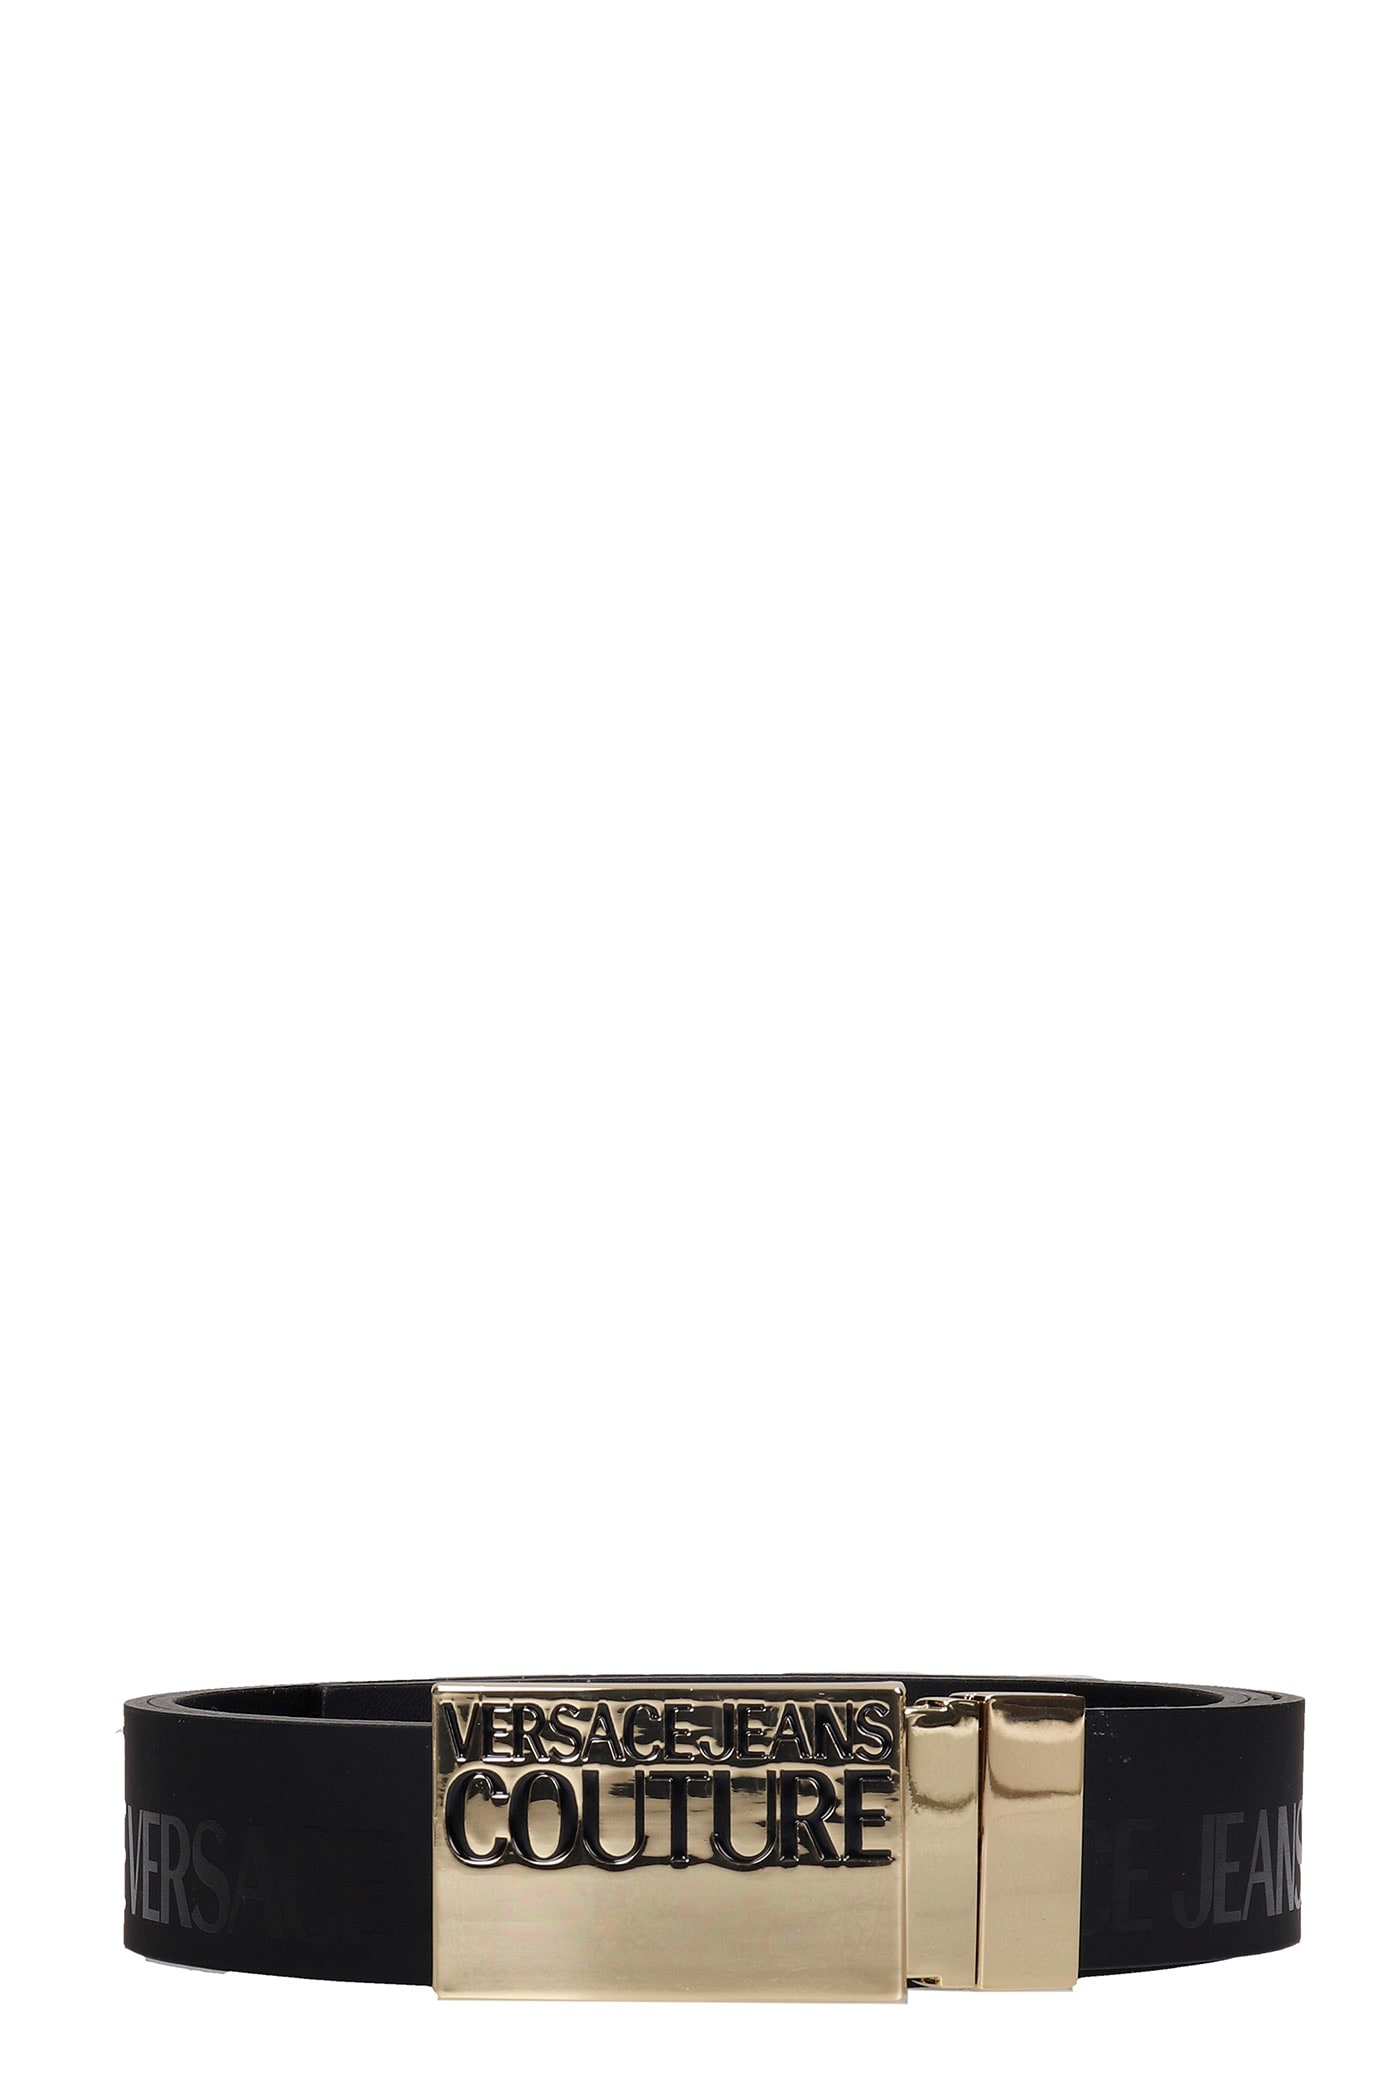 Versace Jeans Couture Belts In Black Leather